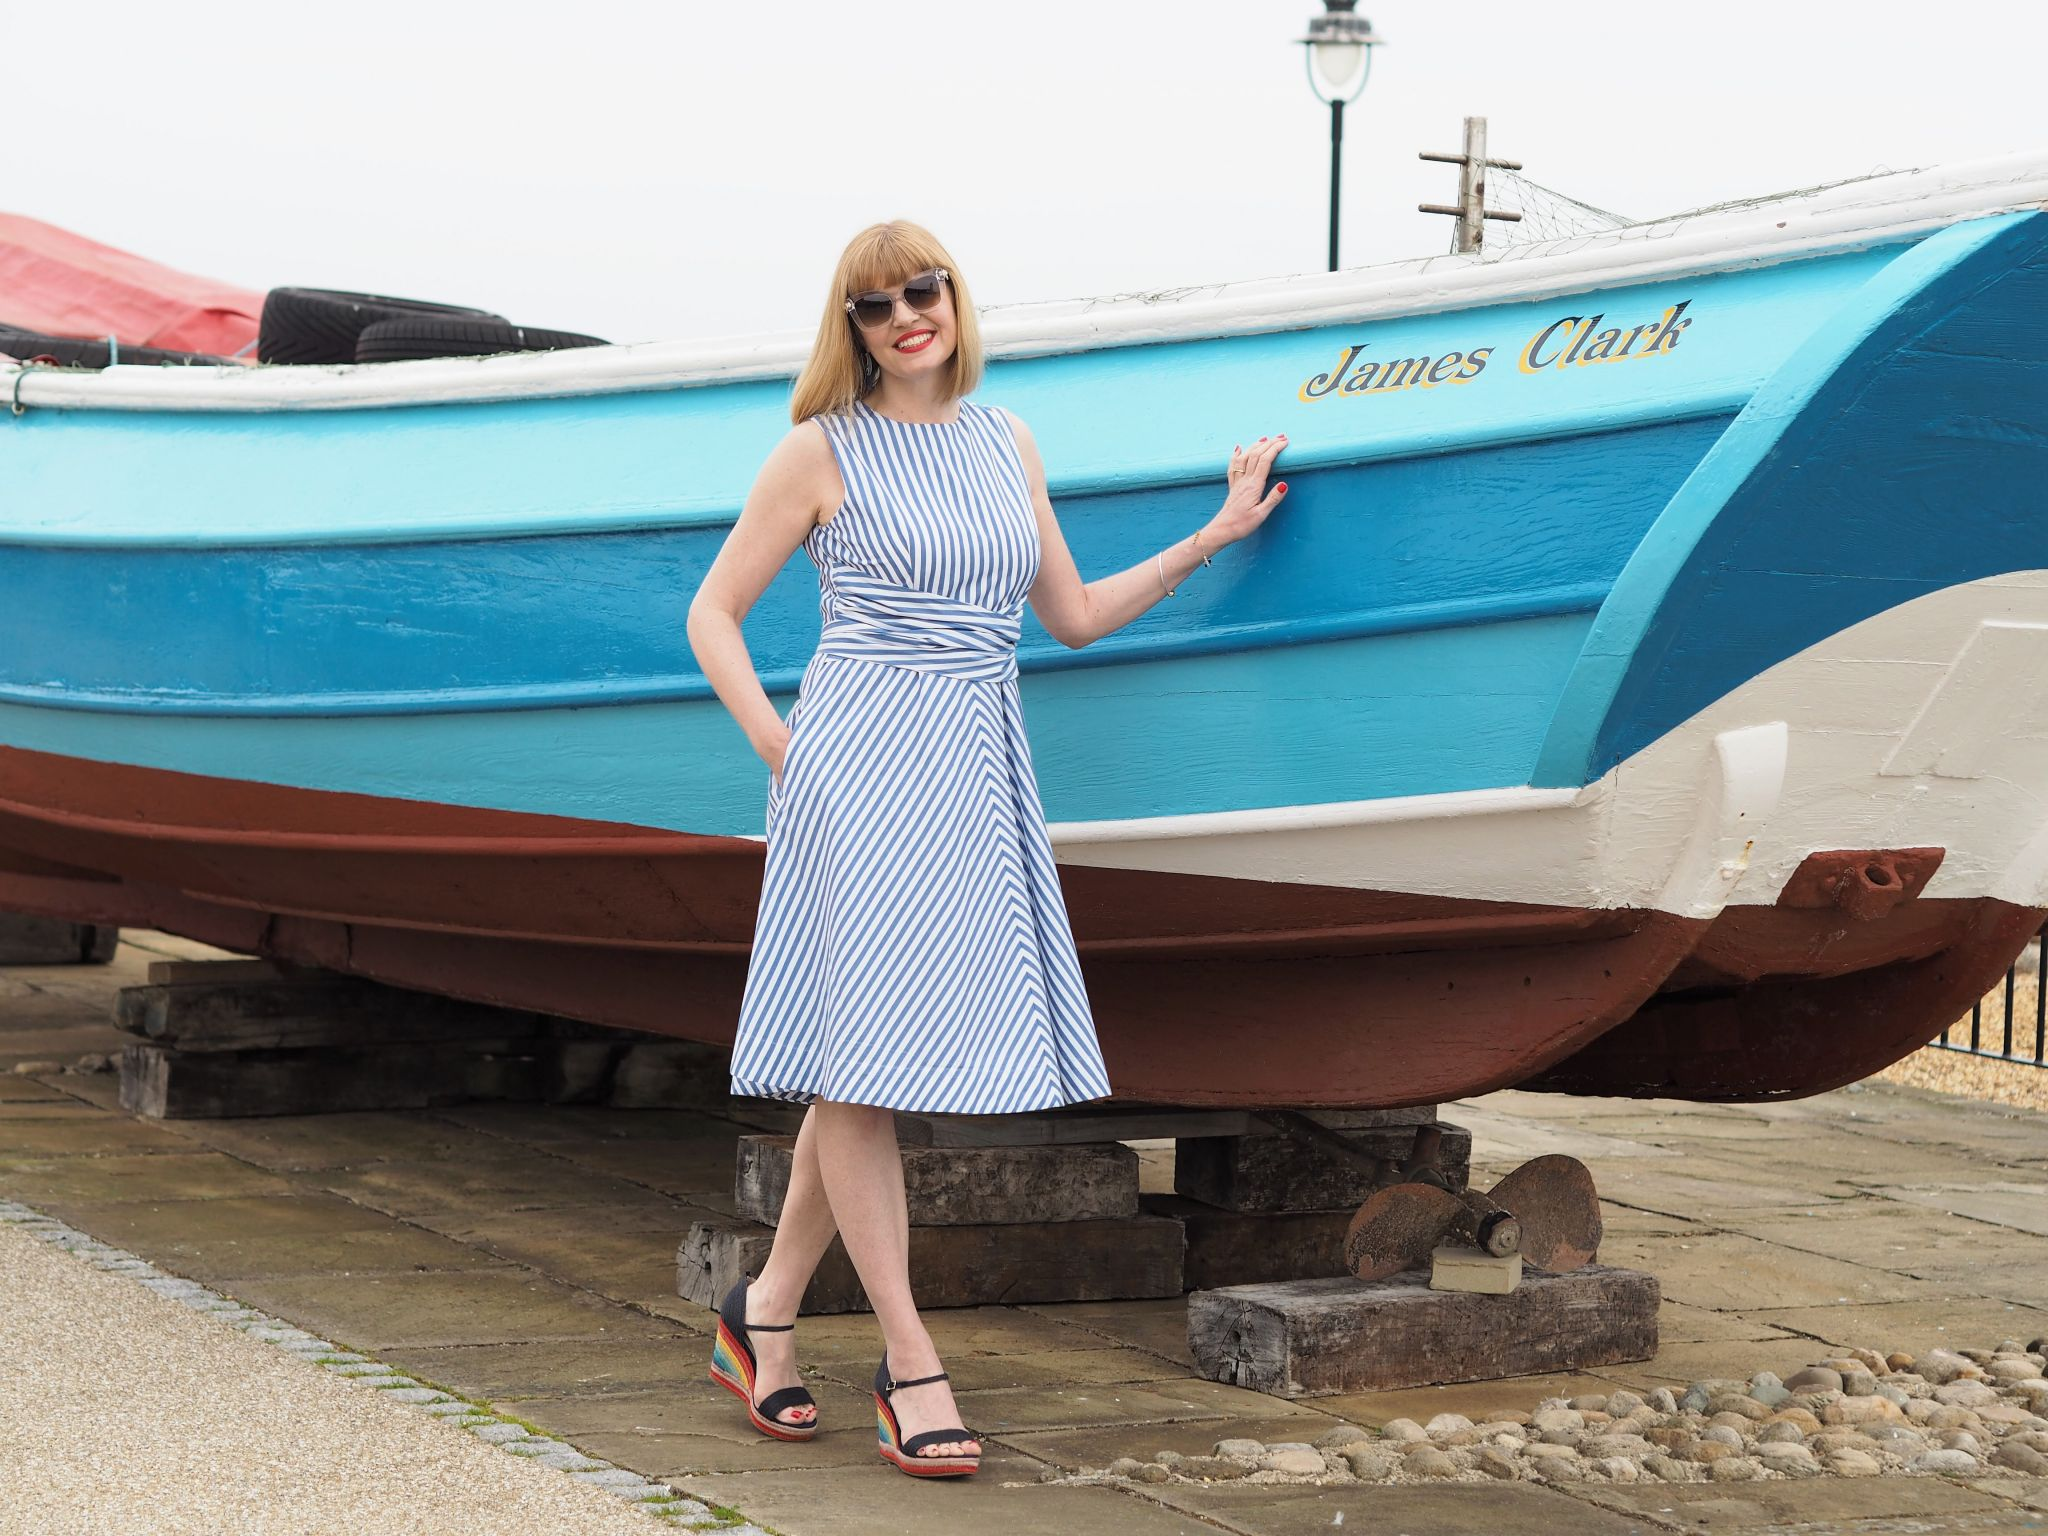 Blue striped 1950s style dress and glamorous cat eye sunglasses